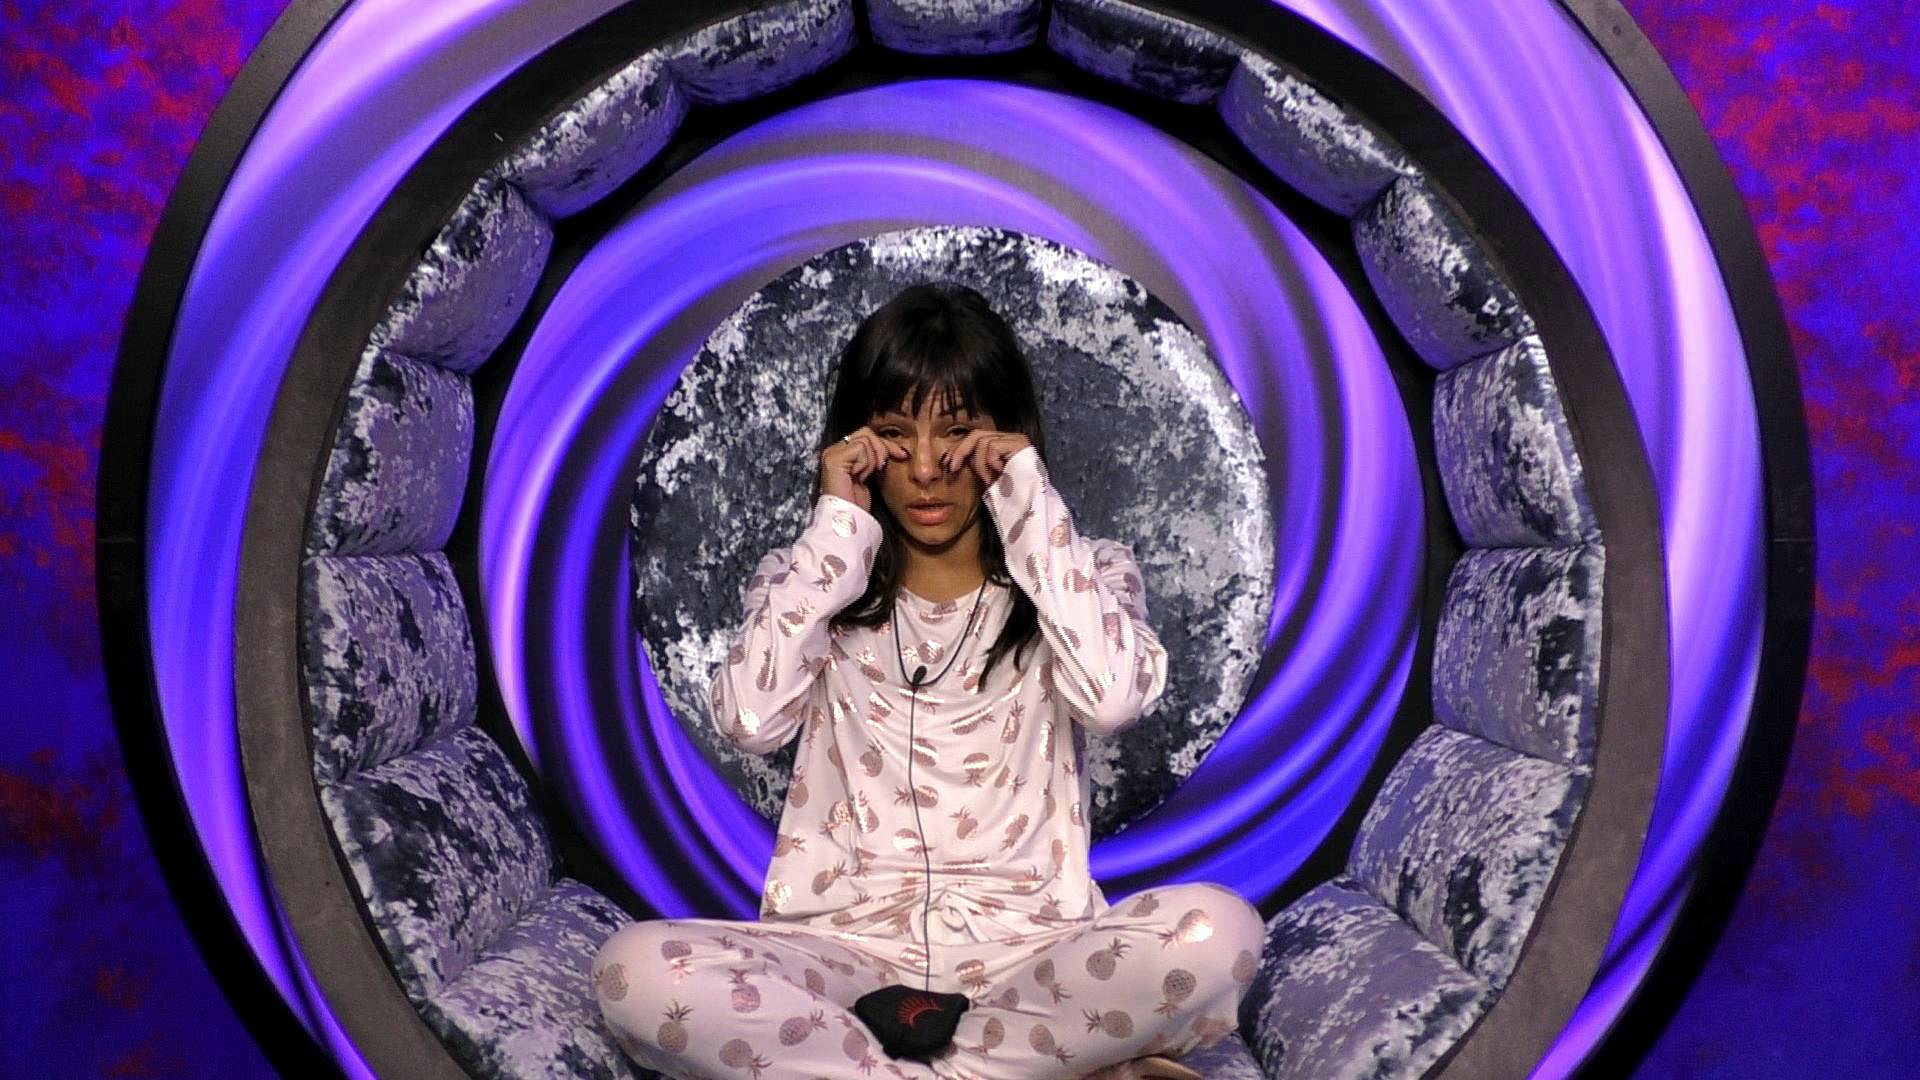 CBB's Roxanne Pallett leaves the house in tears after housemates turn on her for Ryan Thomas accusations: 'You need to tell the truth'